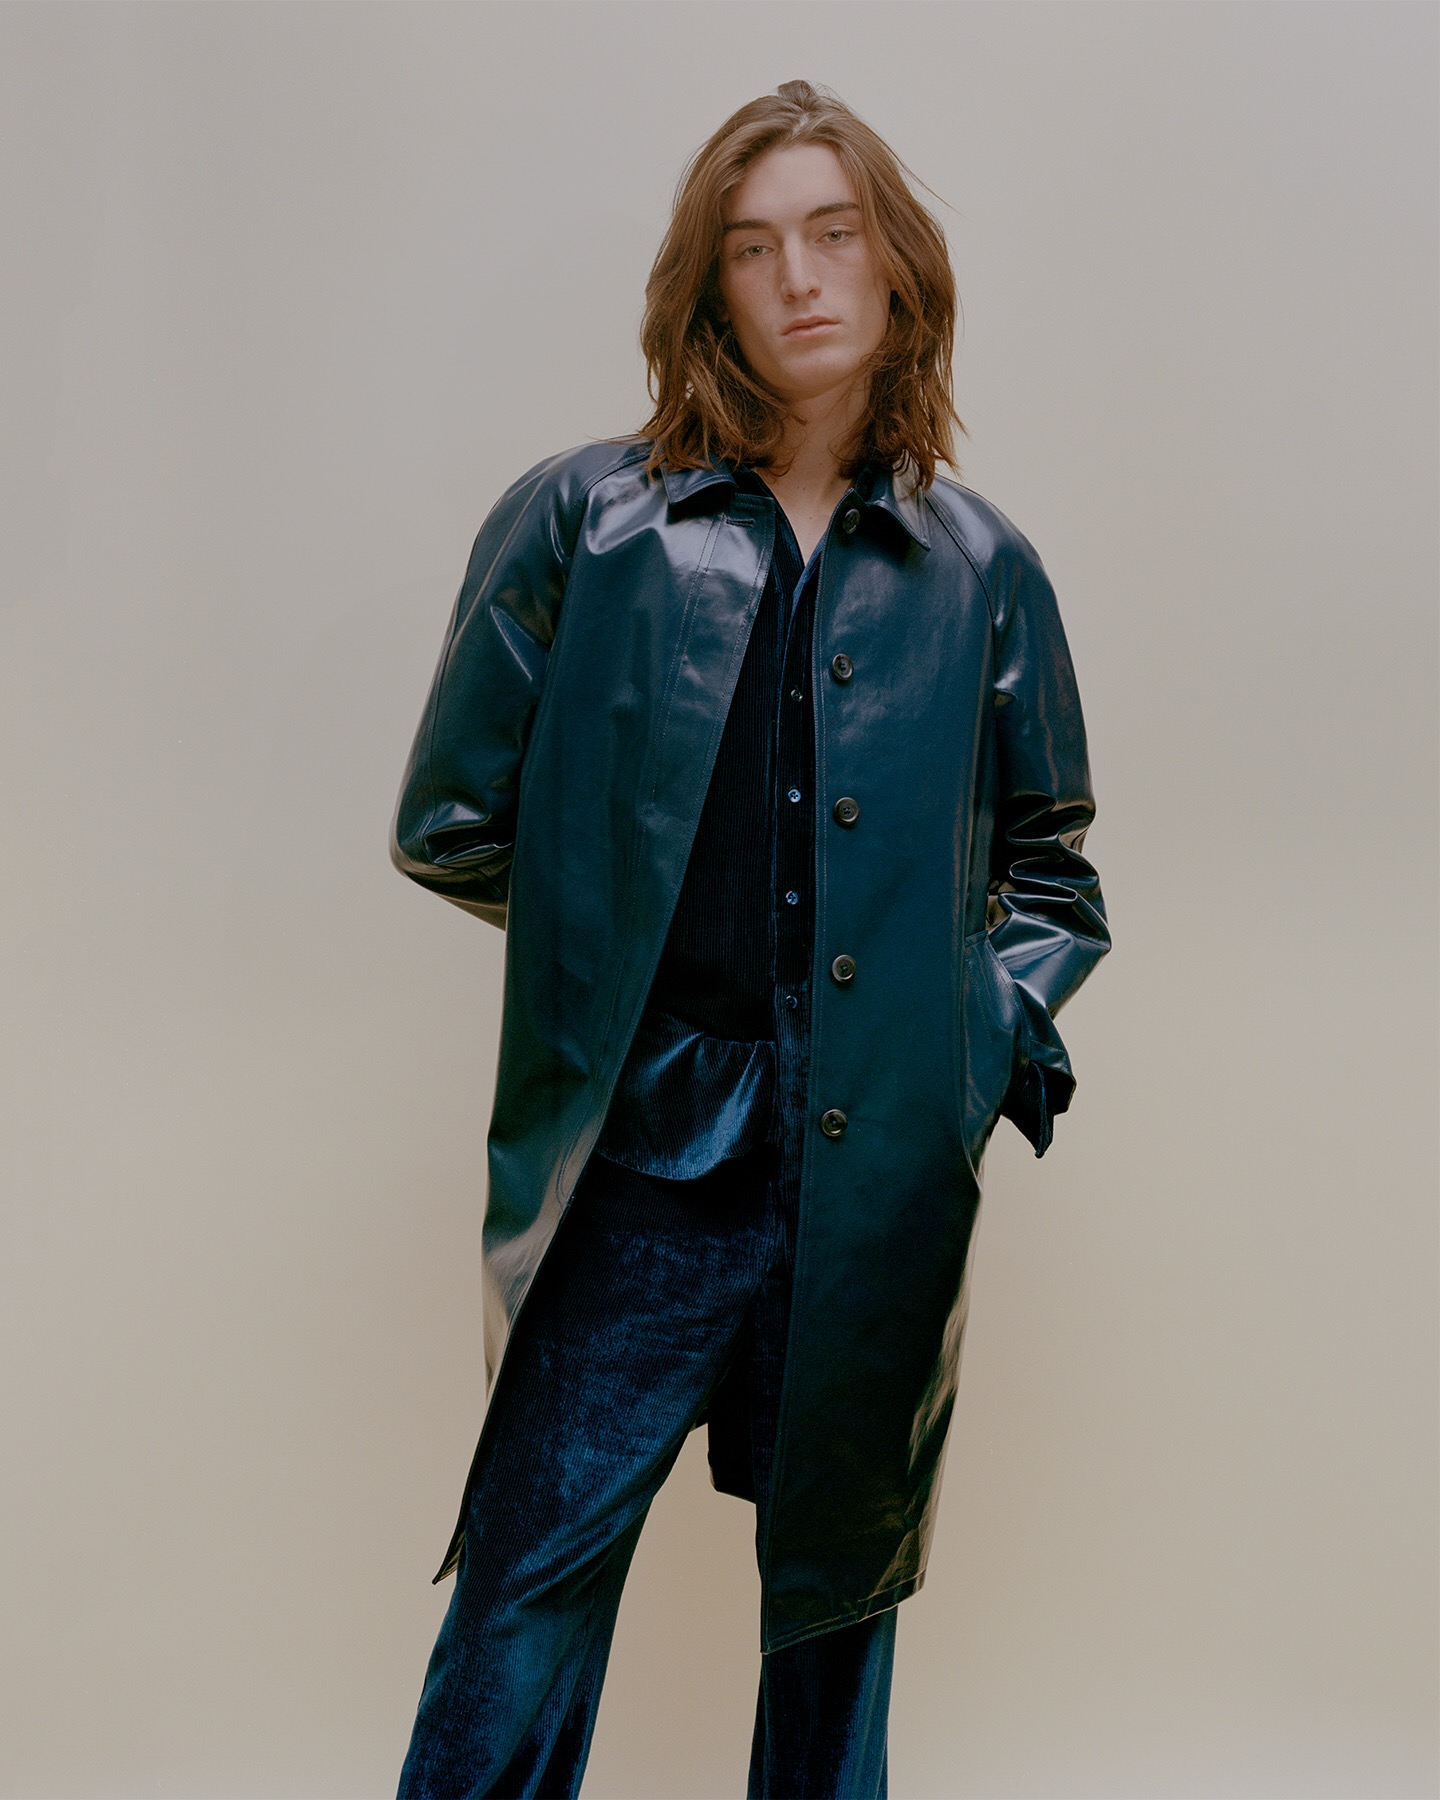 Sies-Marjan-mens-capsule-collection-the-impression-07